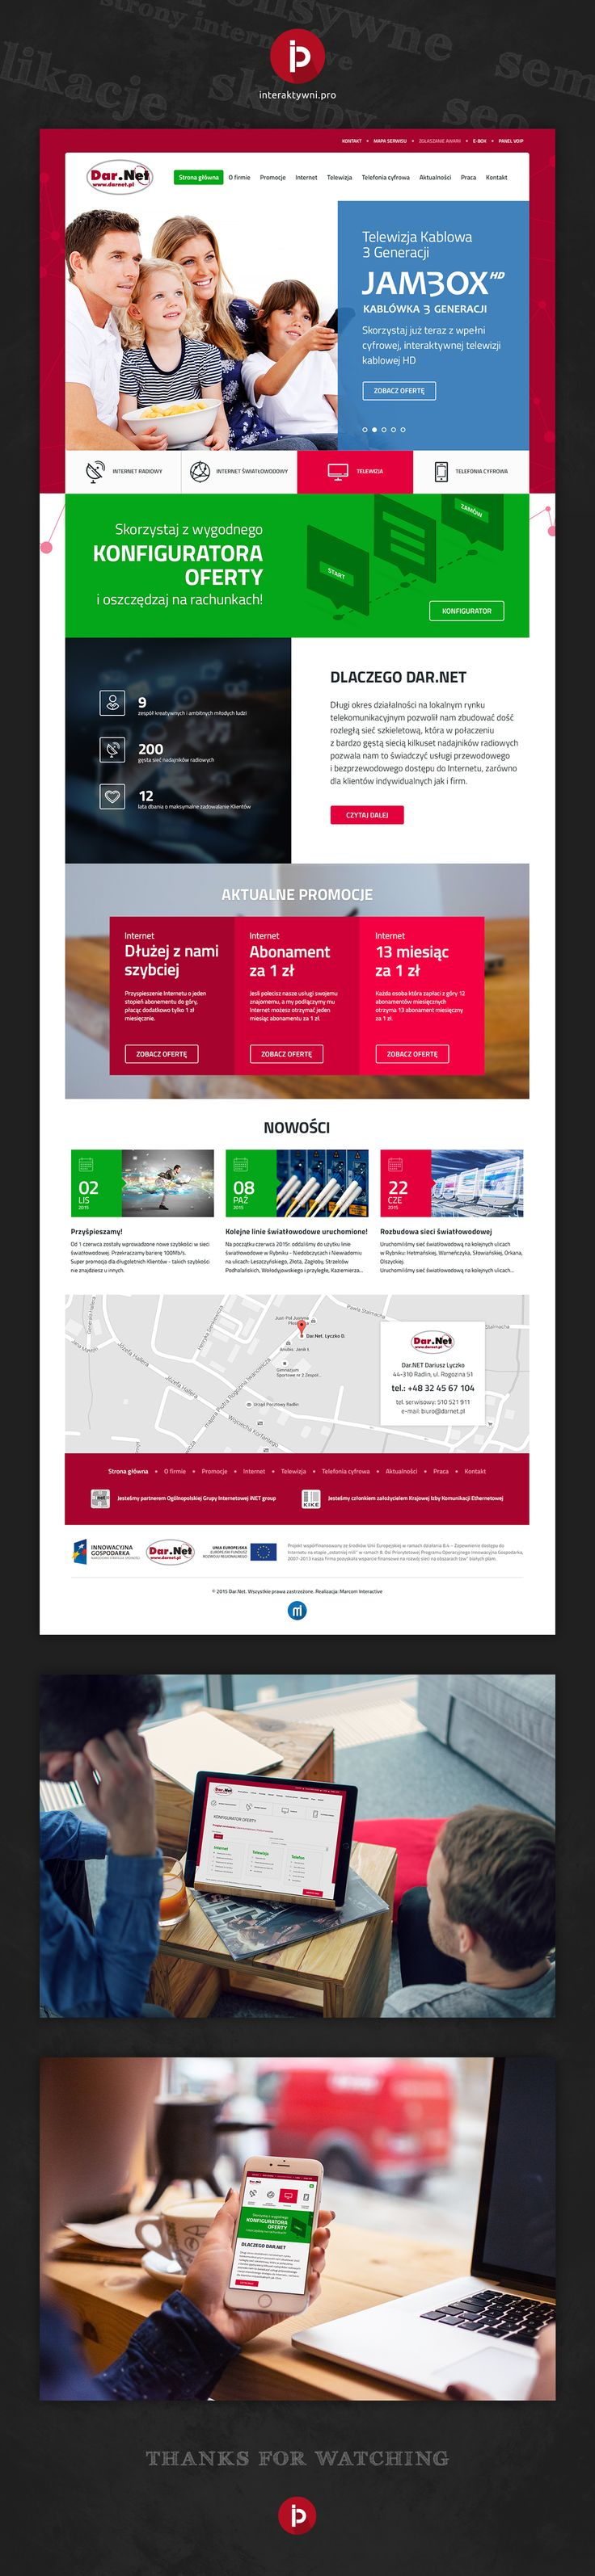 Responsywna strona internetowa dostawcy internetu i usług telekomunikacyjnych na śląsku - firmy Darnet. // Responsive website of internet provider and telecommunications services in Silesia - the company Darnet. #responsywnestronyinternetowe #interaktywni #stronyinternetowe